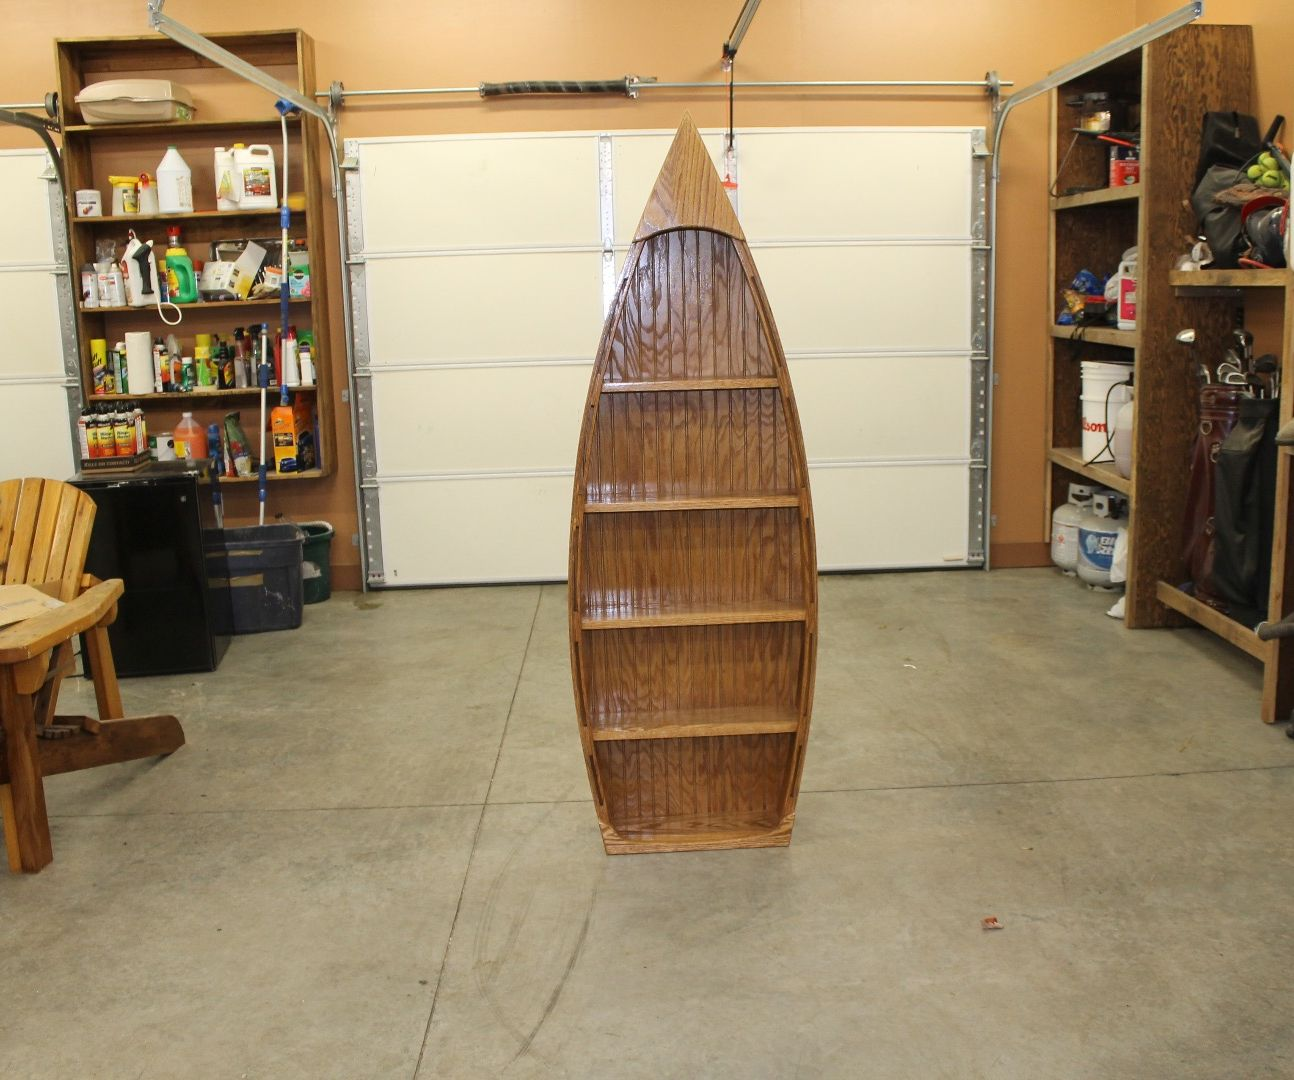 How To Make A Boat With Shelving 7 Steps With Pictures